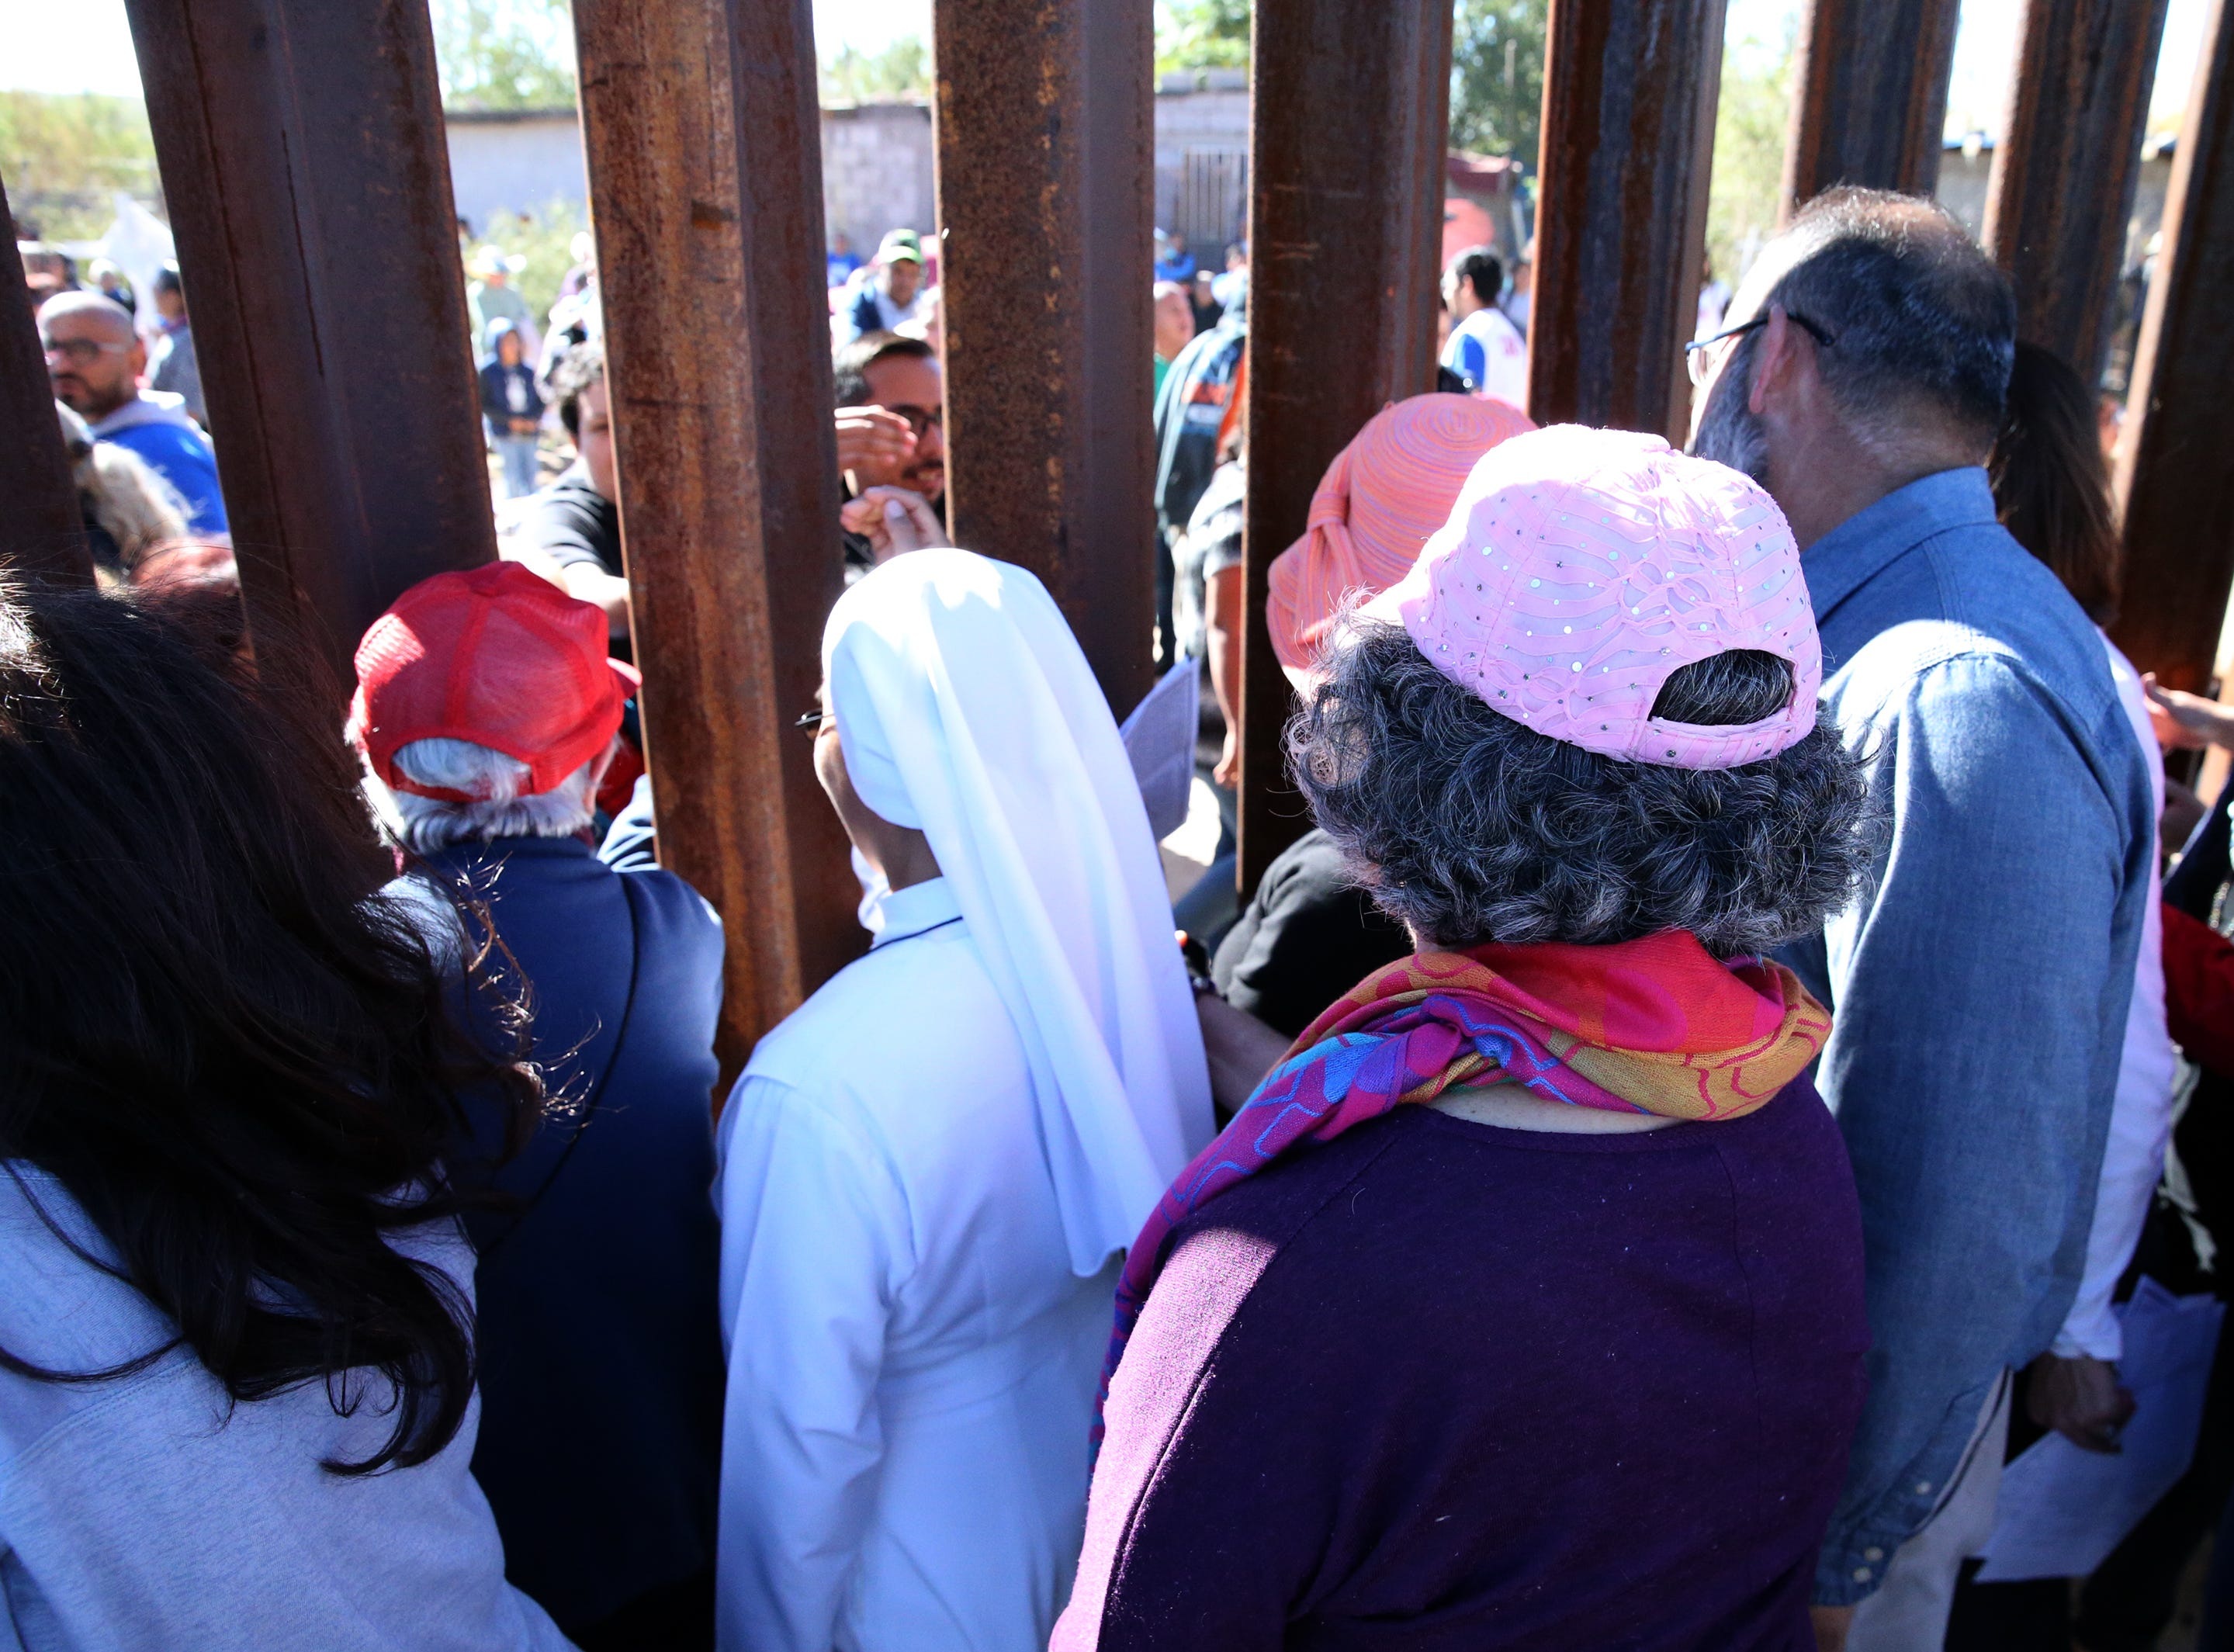 People on the U.S. side of the border fence greet those on the Mexican side at the end of a Border Mass in the Anapra area of Sunland Park, N.M. Saturday.